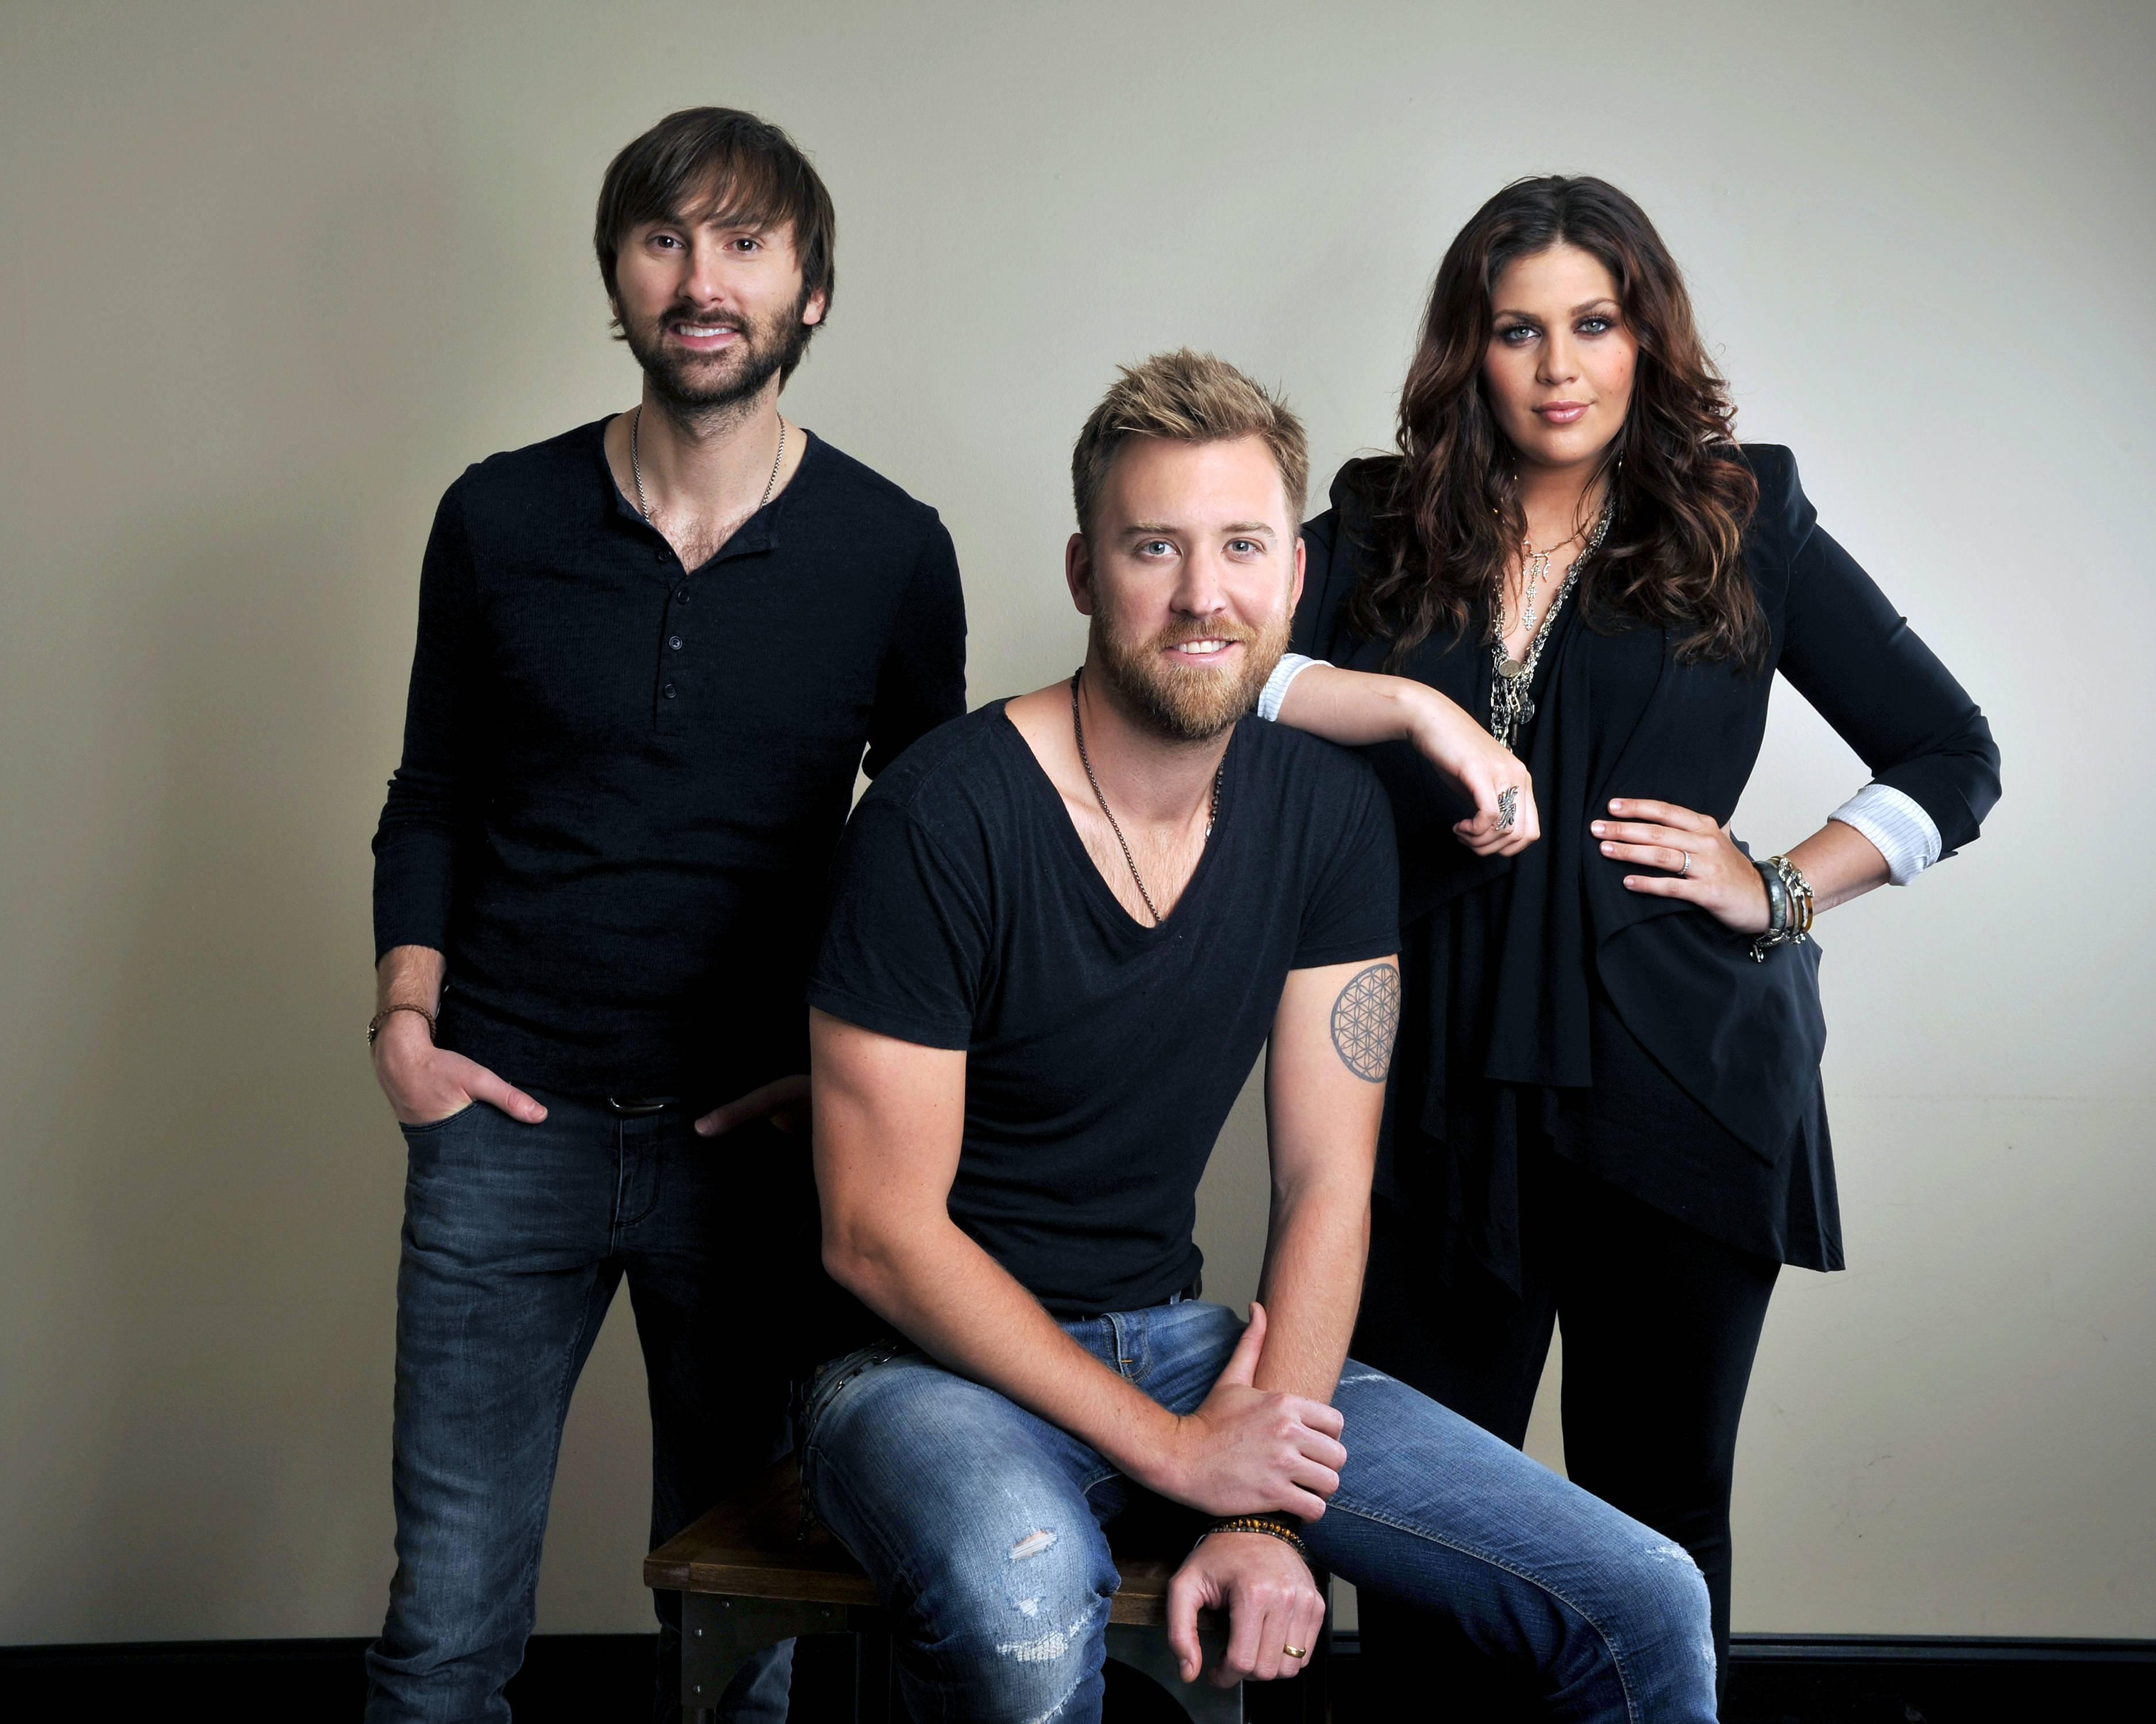 Lady Antebellum -- featuring Dave Haywood, left, Charles Kelley and Hillary Scott -- will play RiverEdge Park in Aurora on Thursday, Aug. 7.